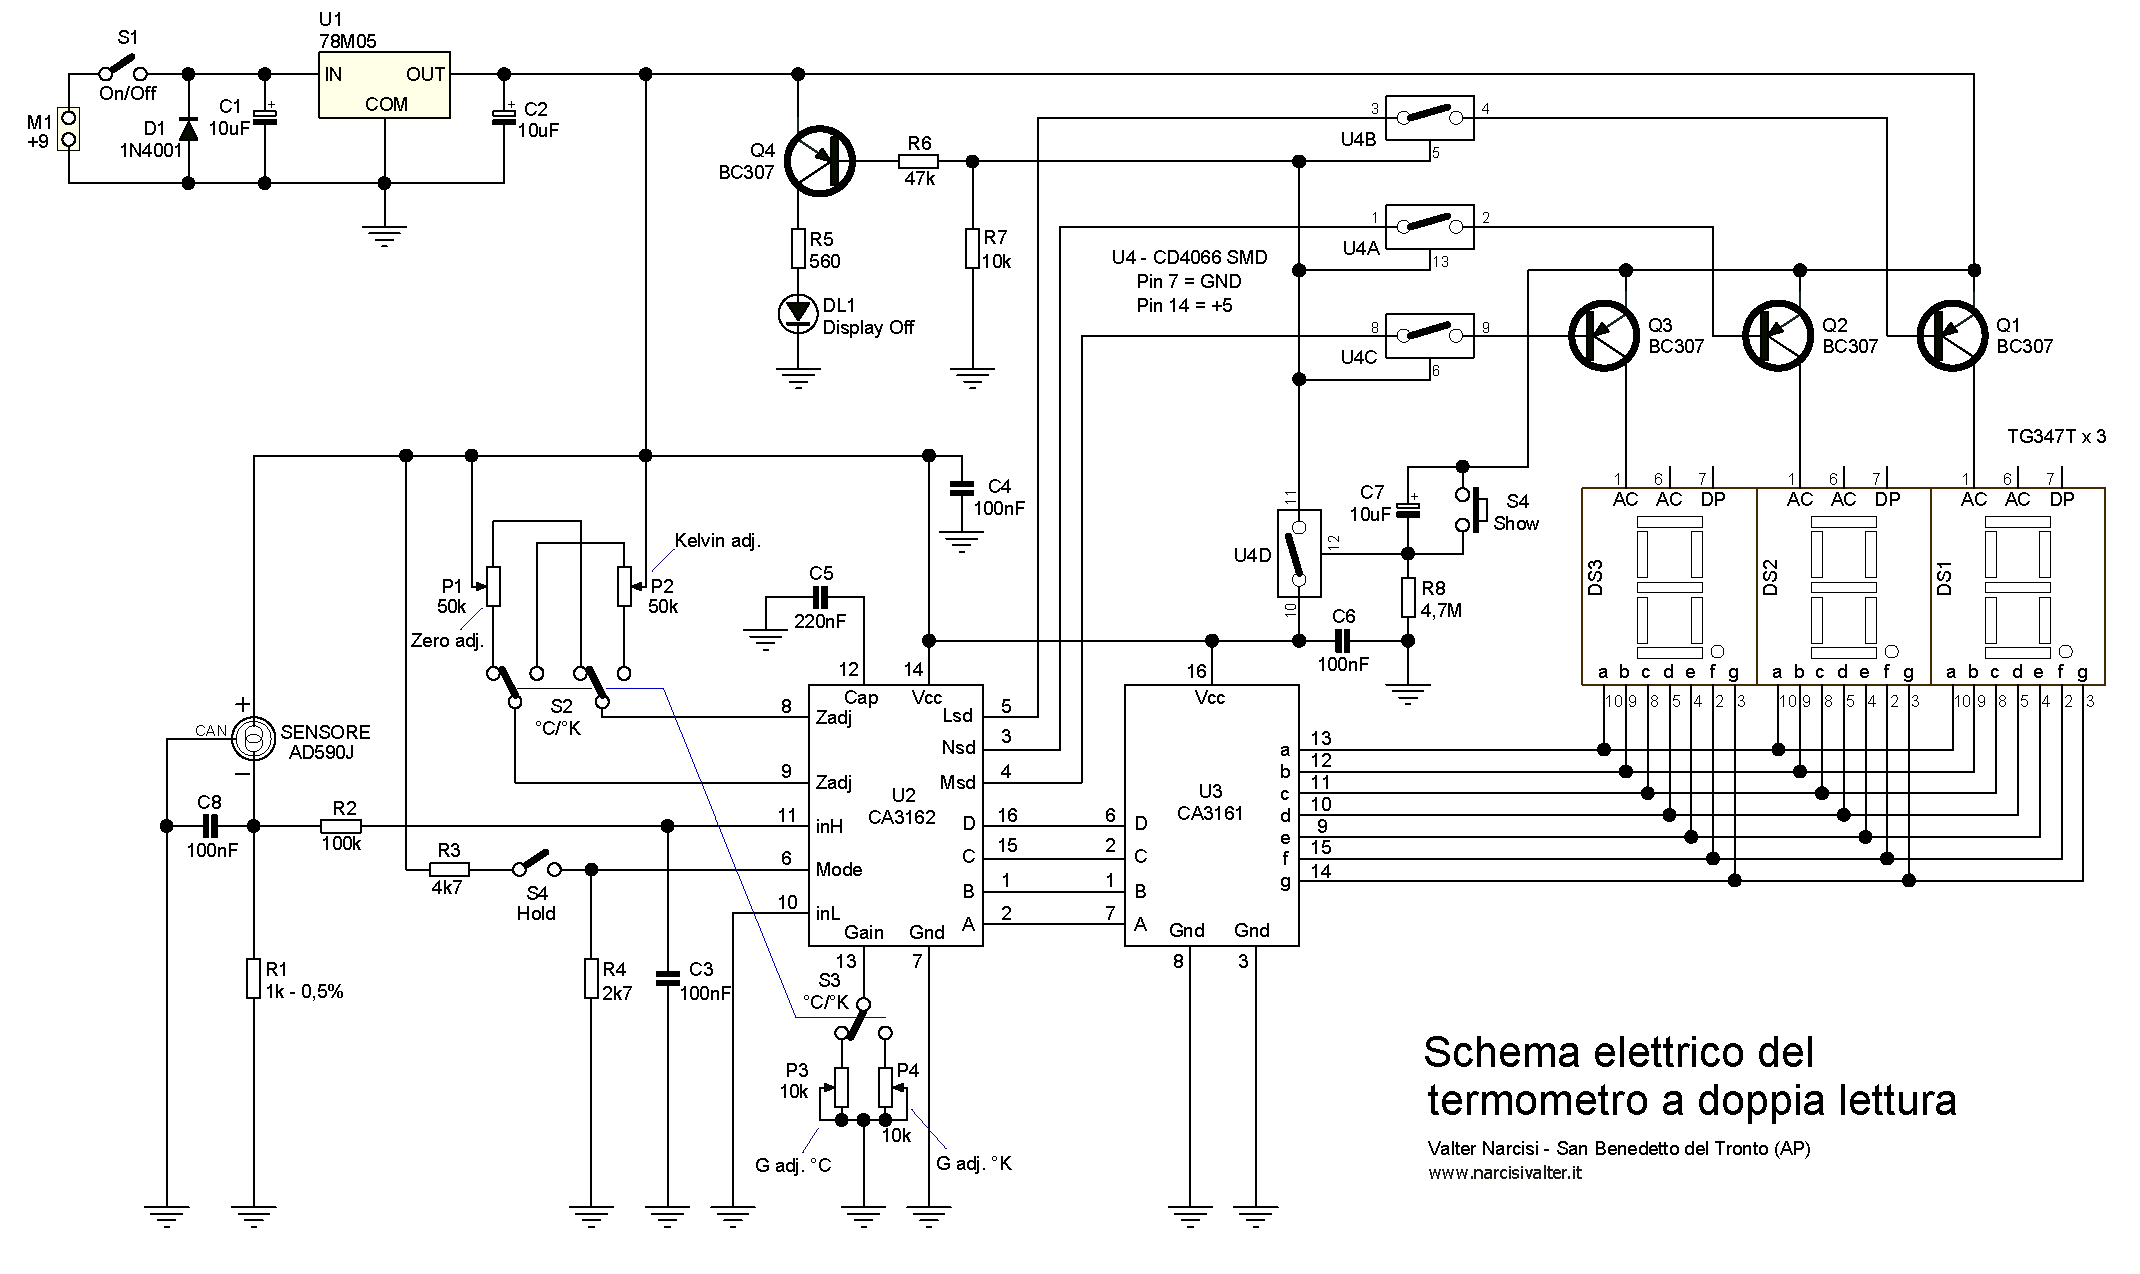 Termometro digitale as well Wiring Diagram For A Car Ammeter furthermore How To Make Your Own Running Shoes also Norsk Og Voltmeter Wiring Diagram together with PanelMeter. on digital ammeter circuit diagram pdf